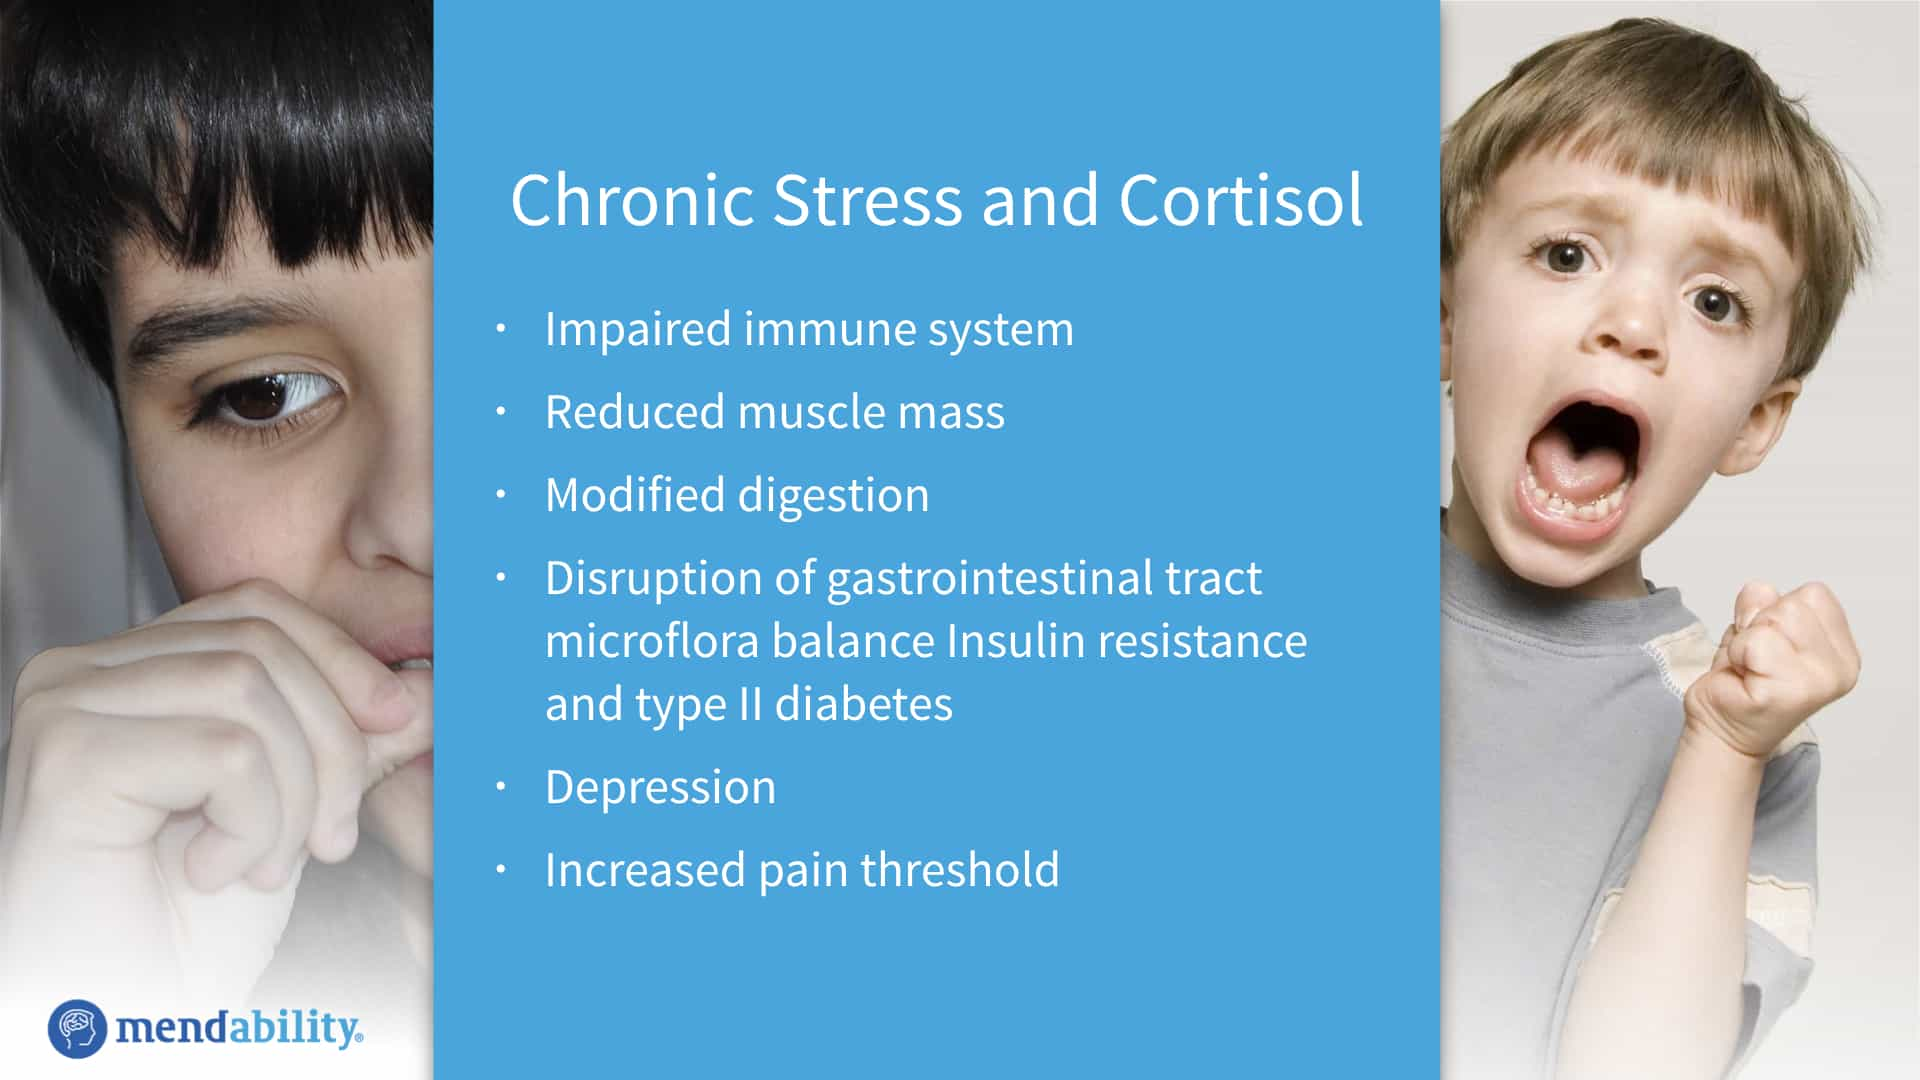 Health effects of chronic stress and cortisol